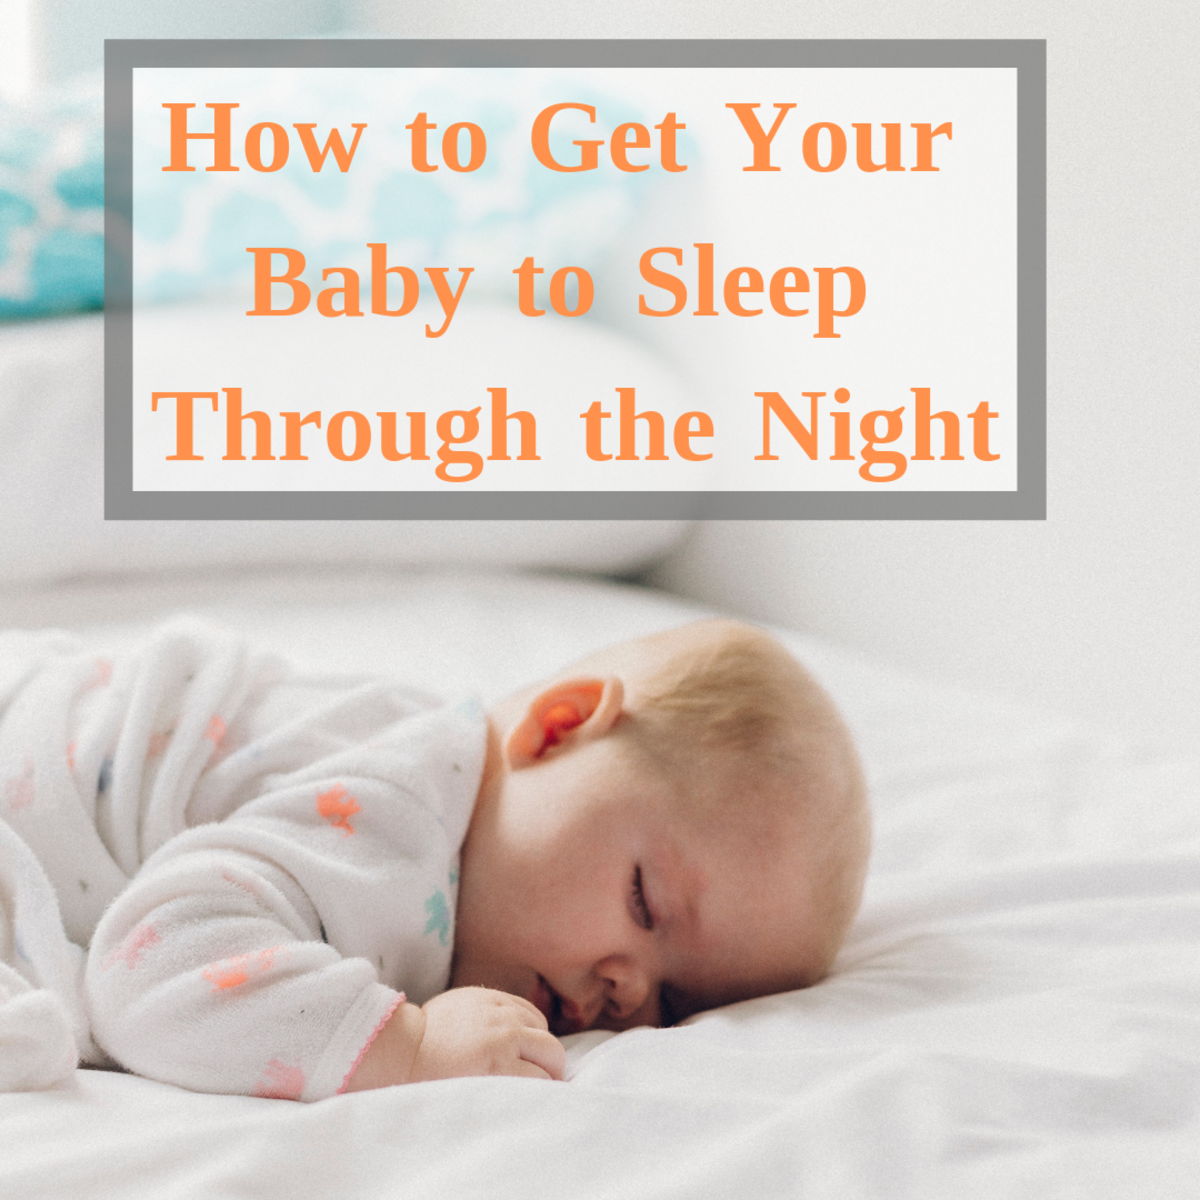 Getting Your Newborn to Sleep Through the Night